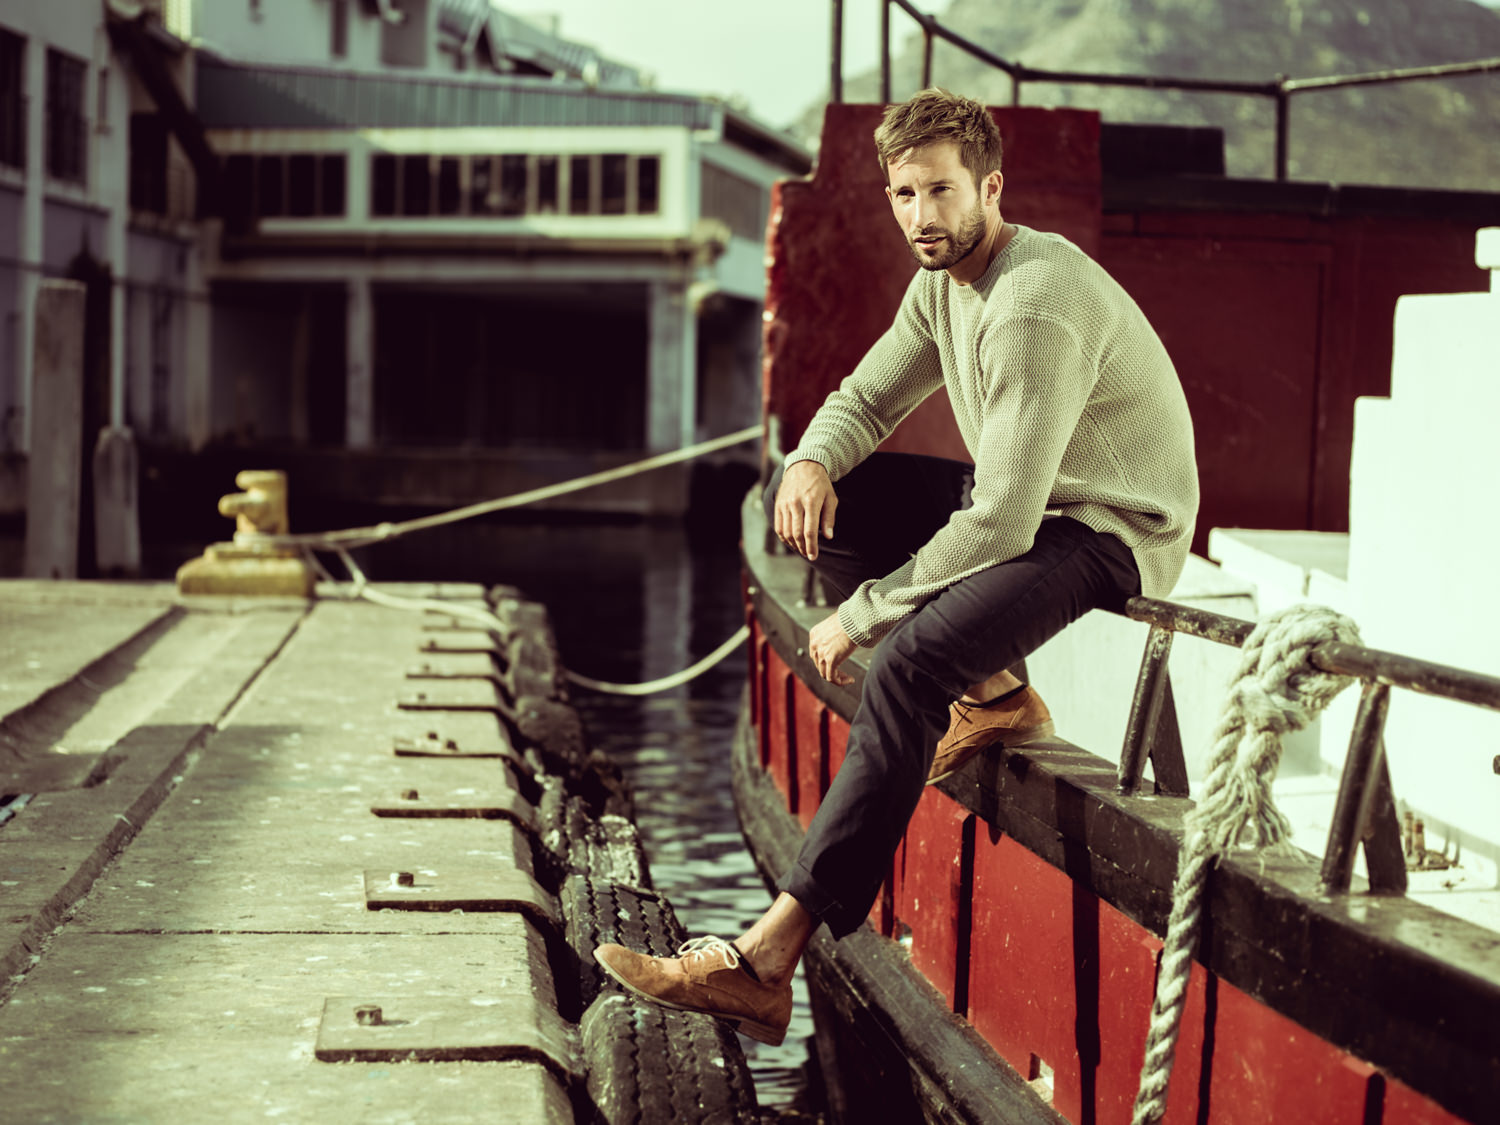 tim gerges the harbour - toby Cape Town Fashion photographer-4573012.jpg